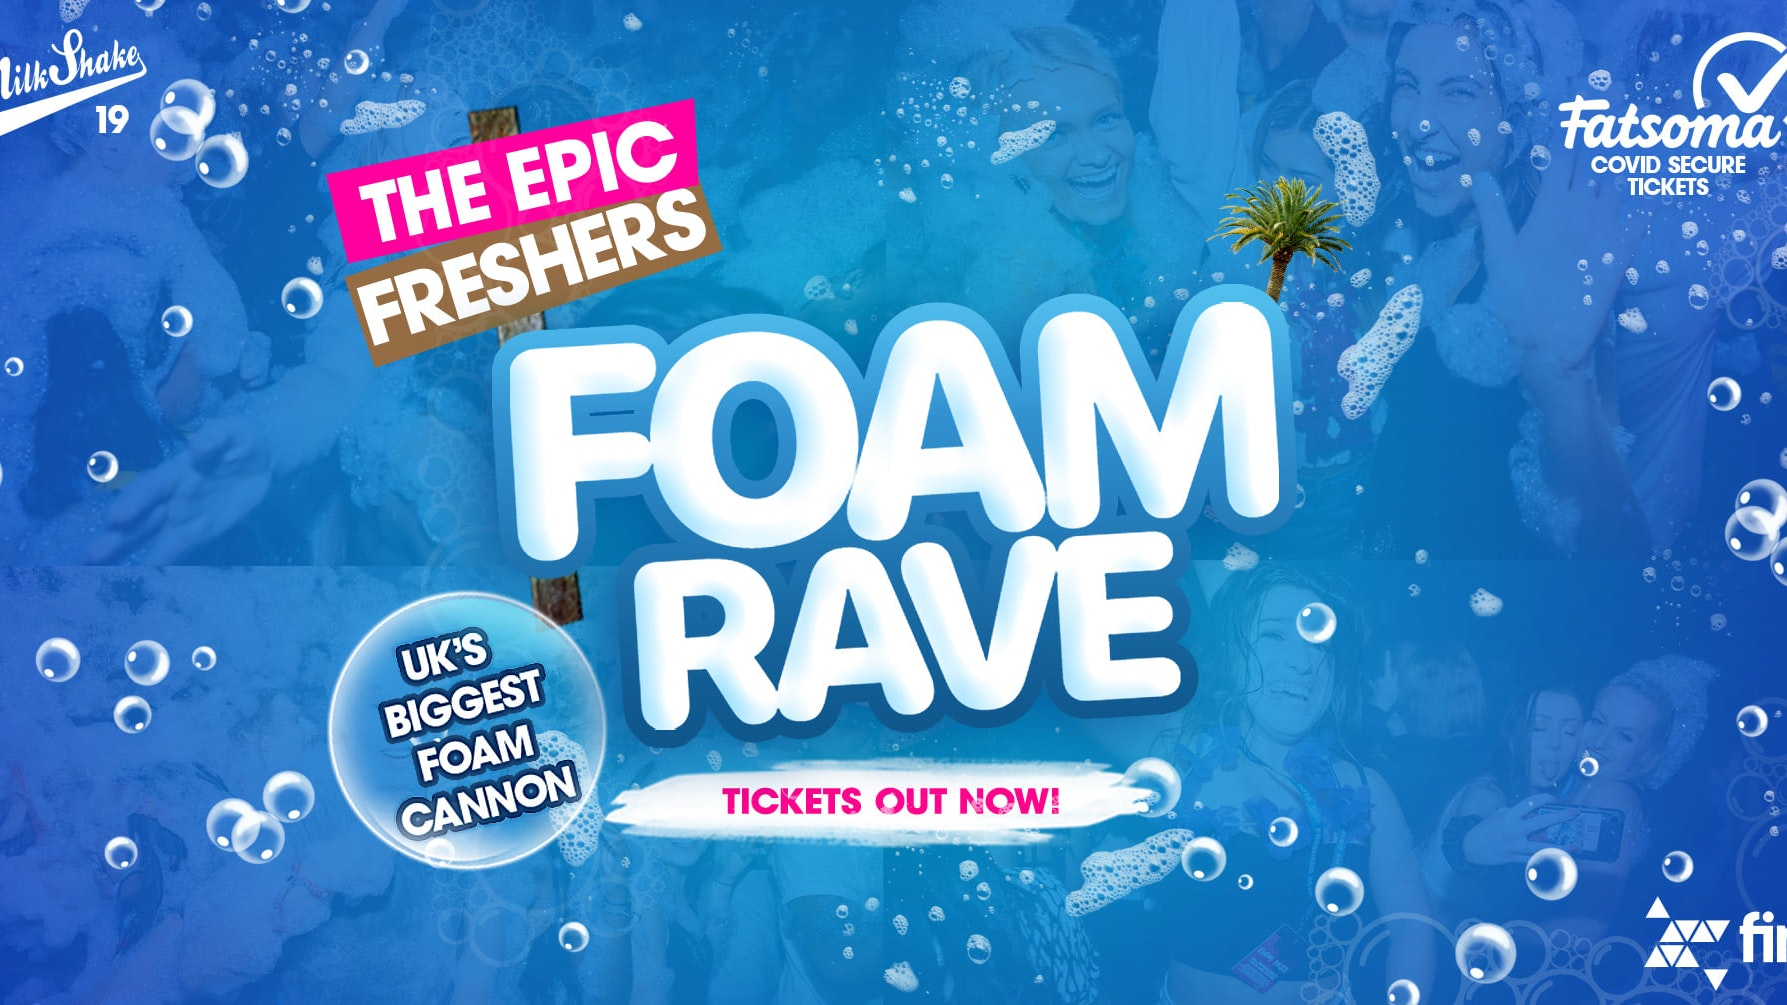 The Epic Freshers Foam Rave 💦 | Live From Fire London